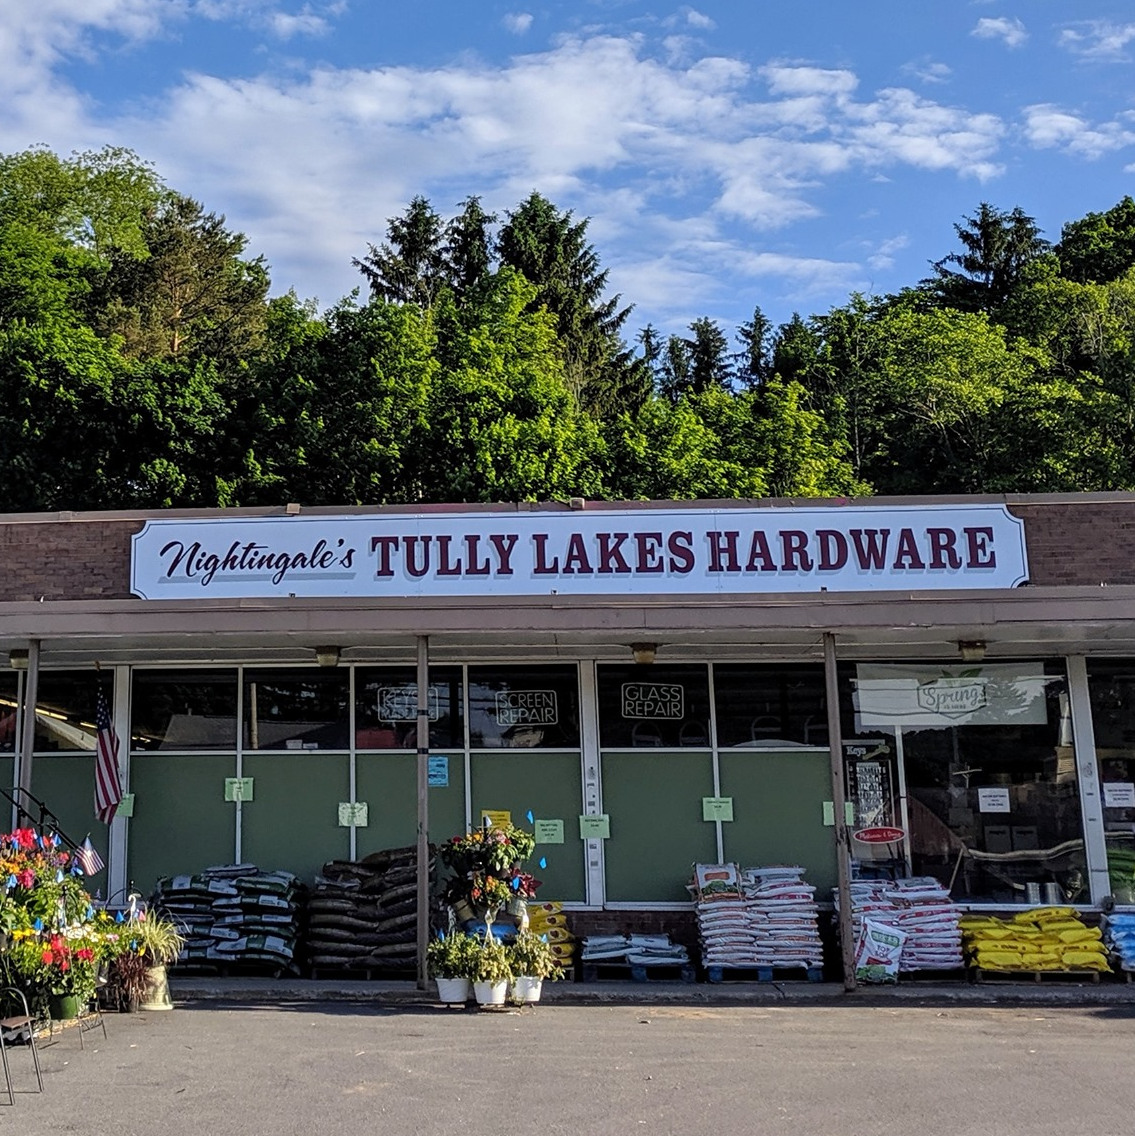 Tully Lakes Hardware storefront